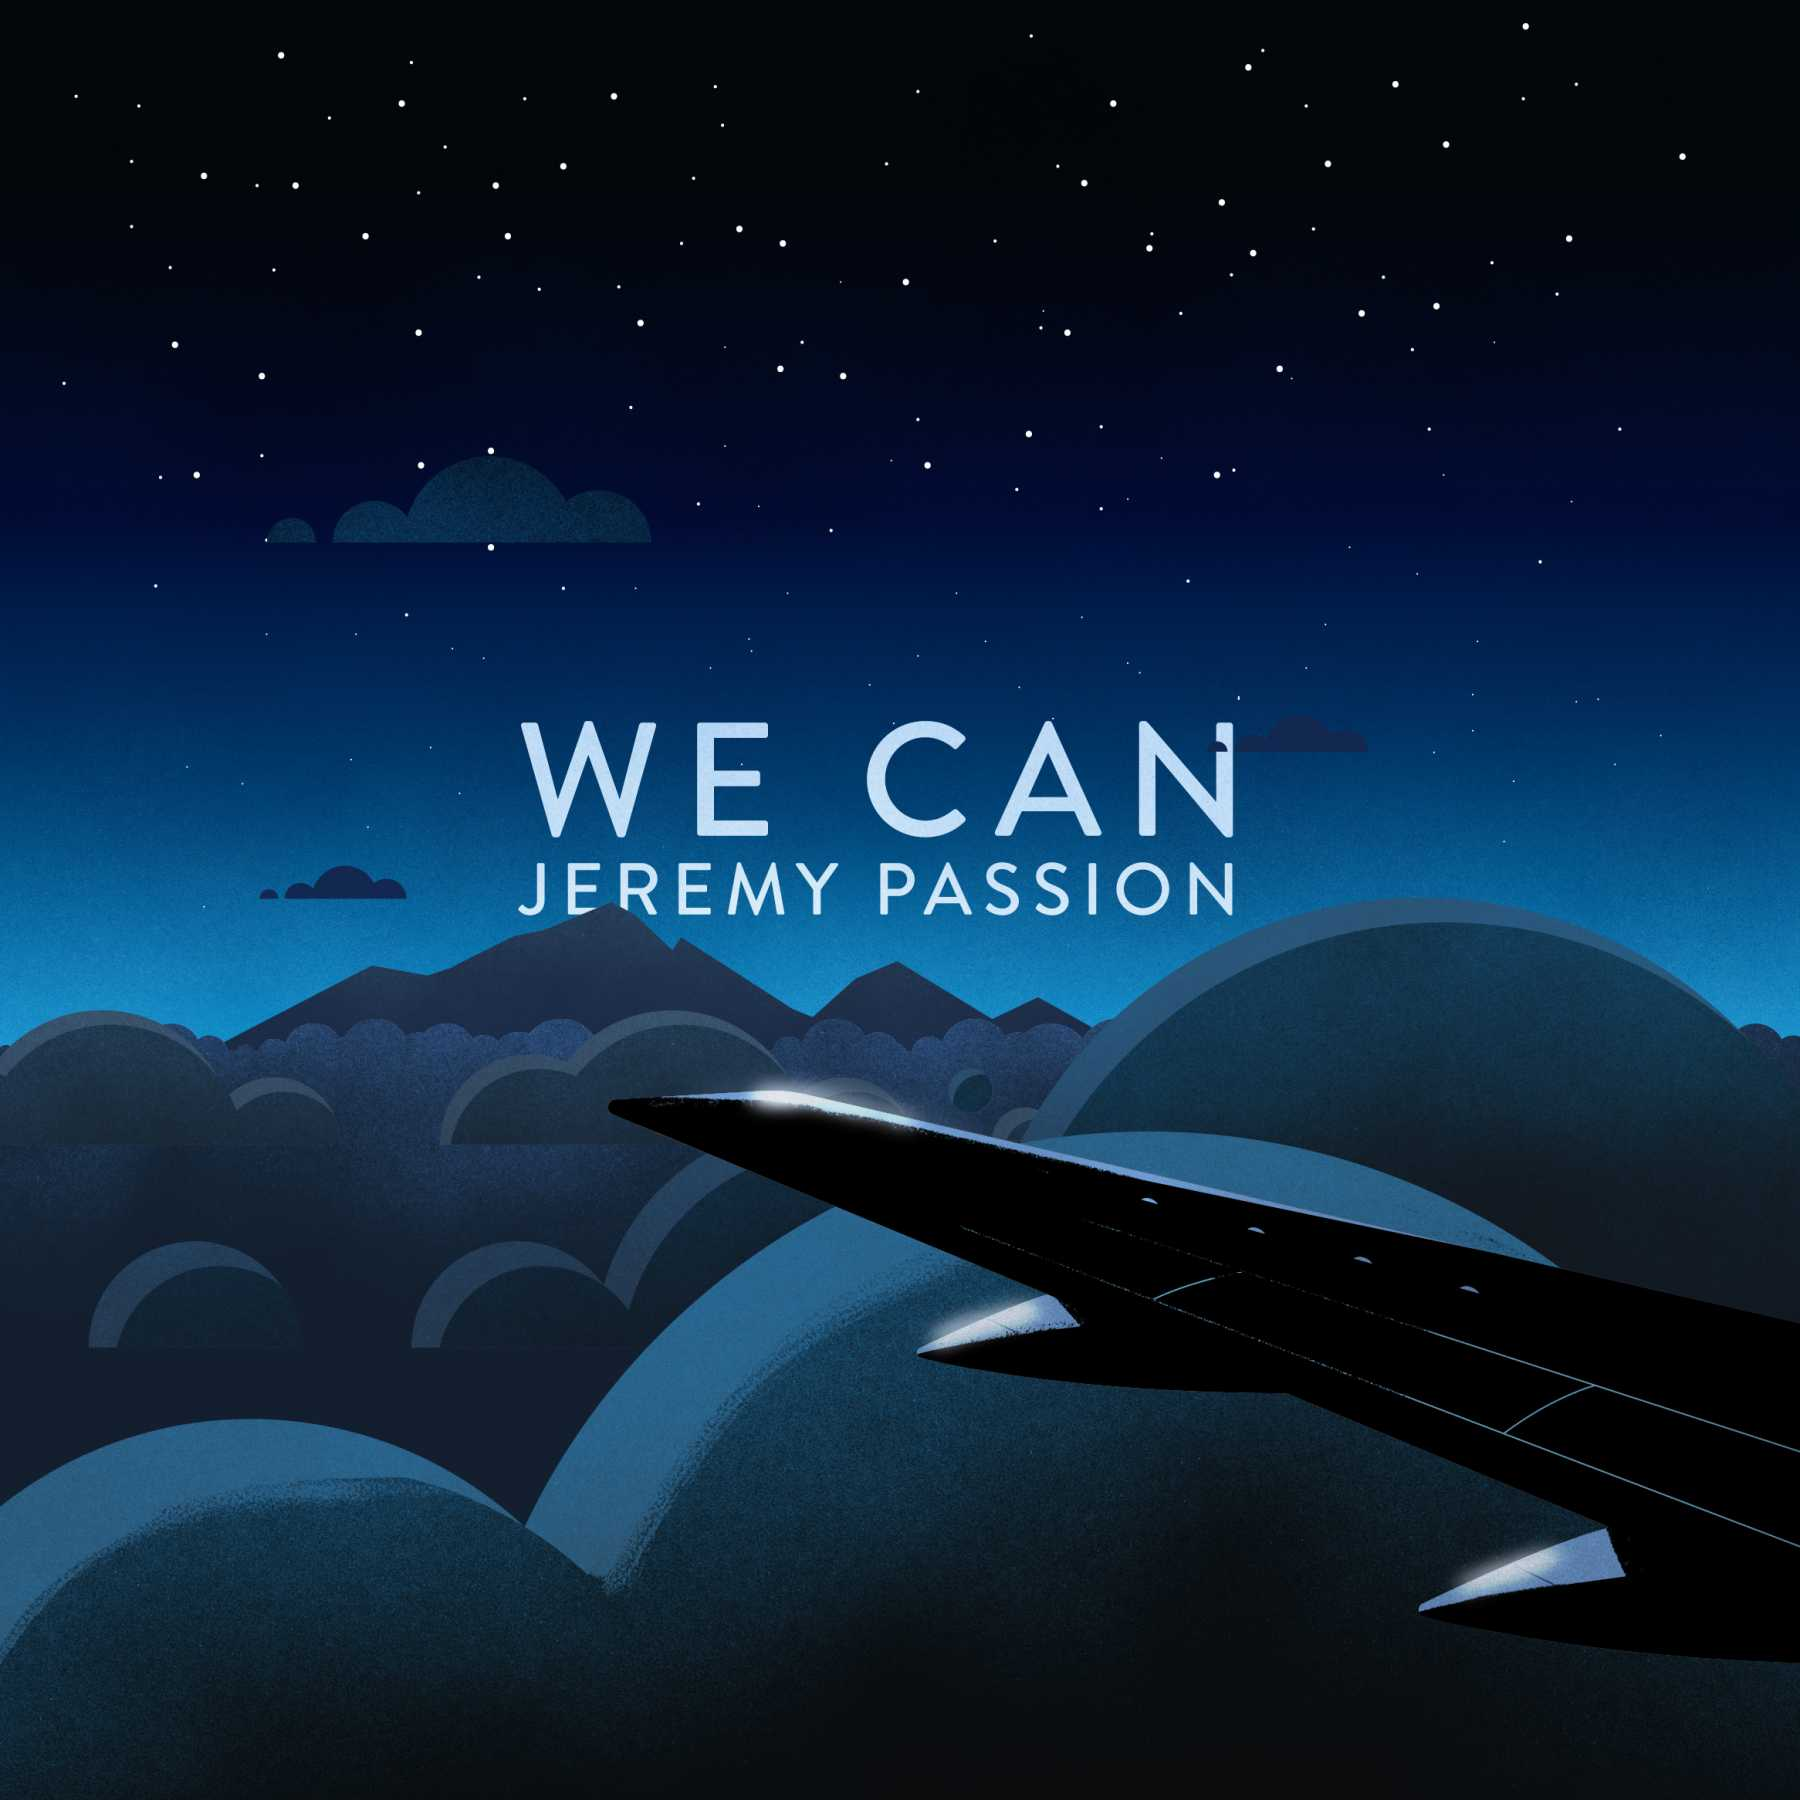 Jeremy Passion Travels The Globe On Romantic New Single 'We Can' | Jeremy Passion